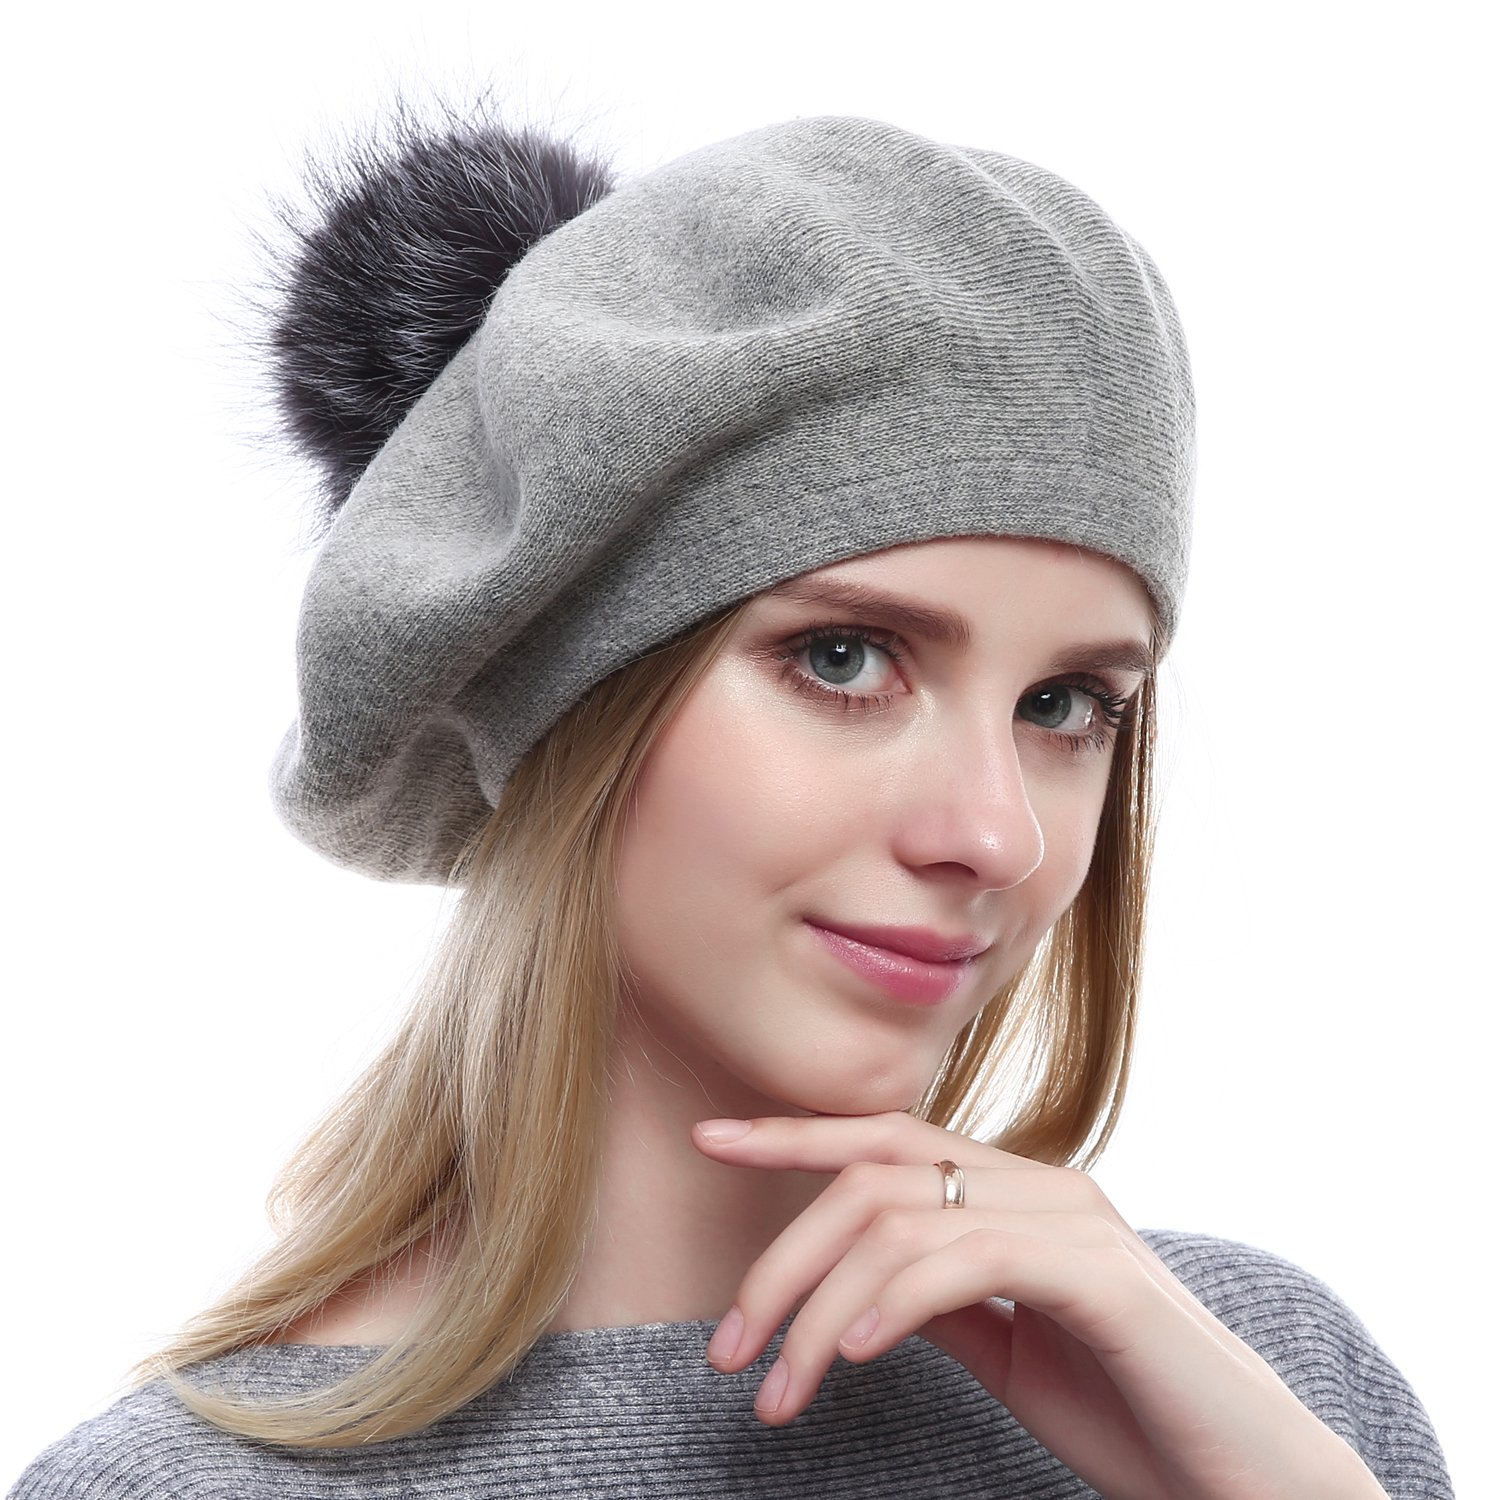 Women Wool Beret - Real Silver Fox Fur Pom Pom Beanies Winter Knit Cashmere Hats QUEENFUR QFHR1706BEI